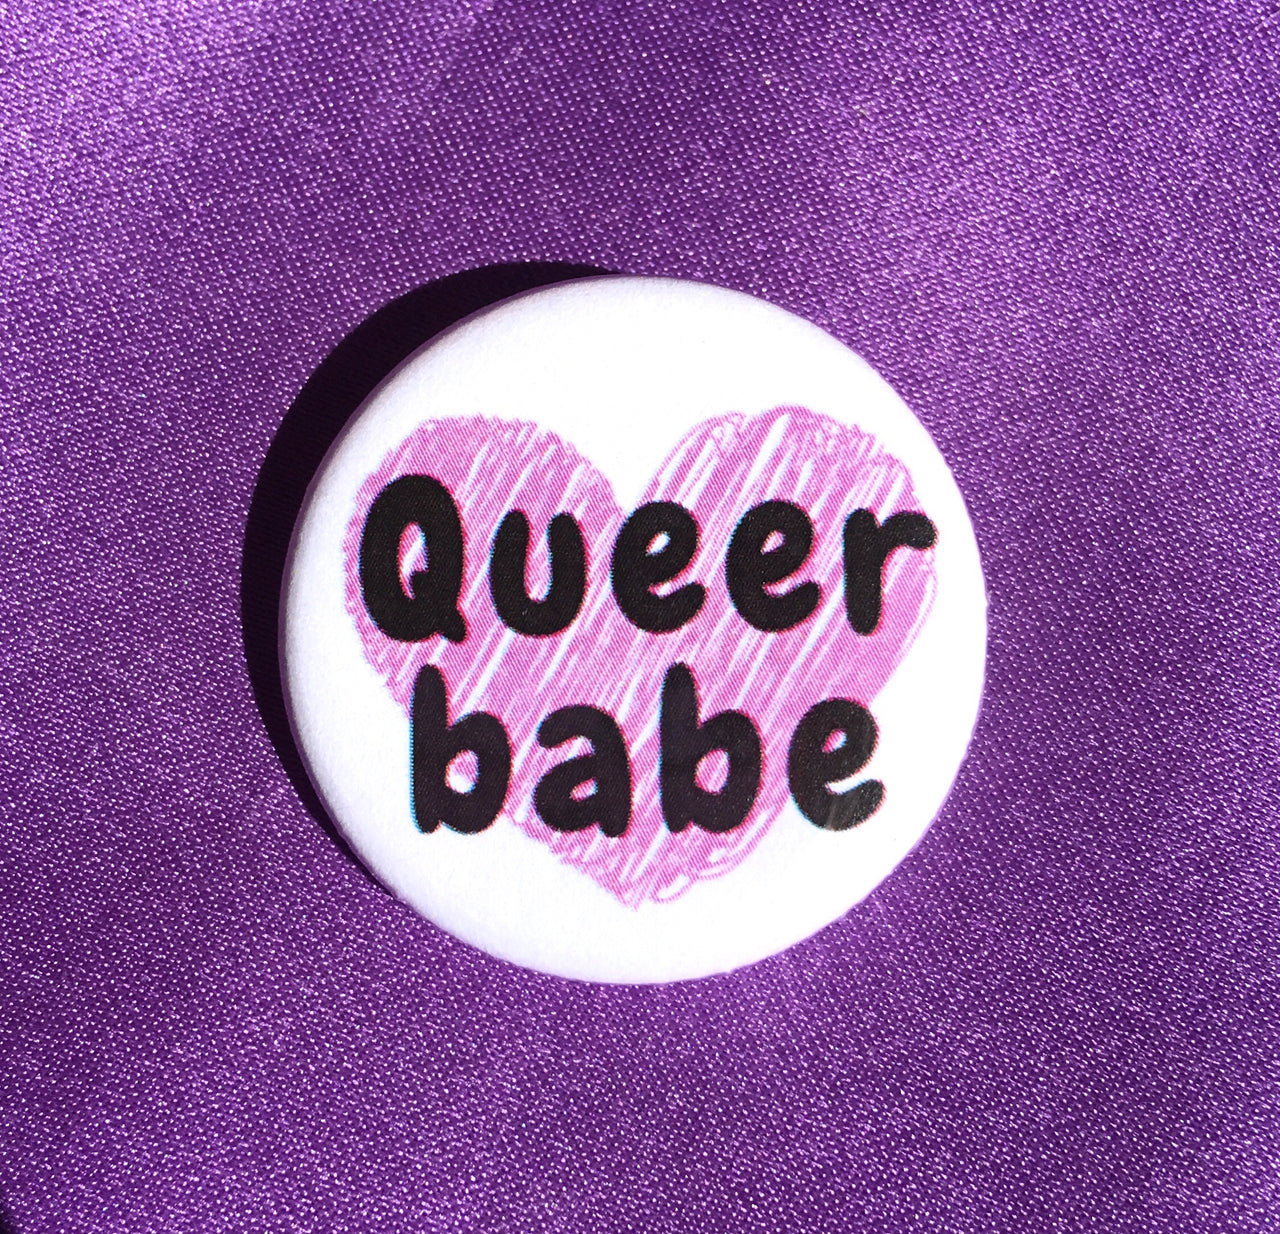 Queer babe - Radical Buttons